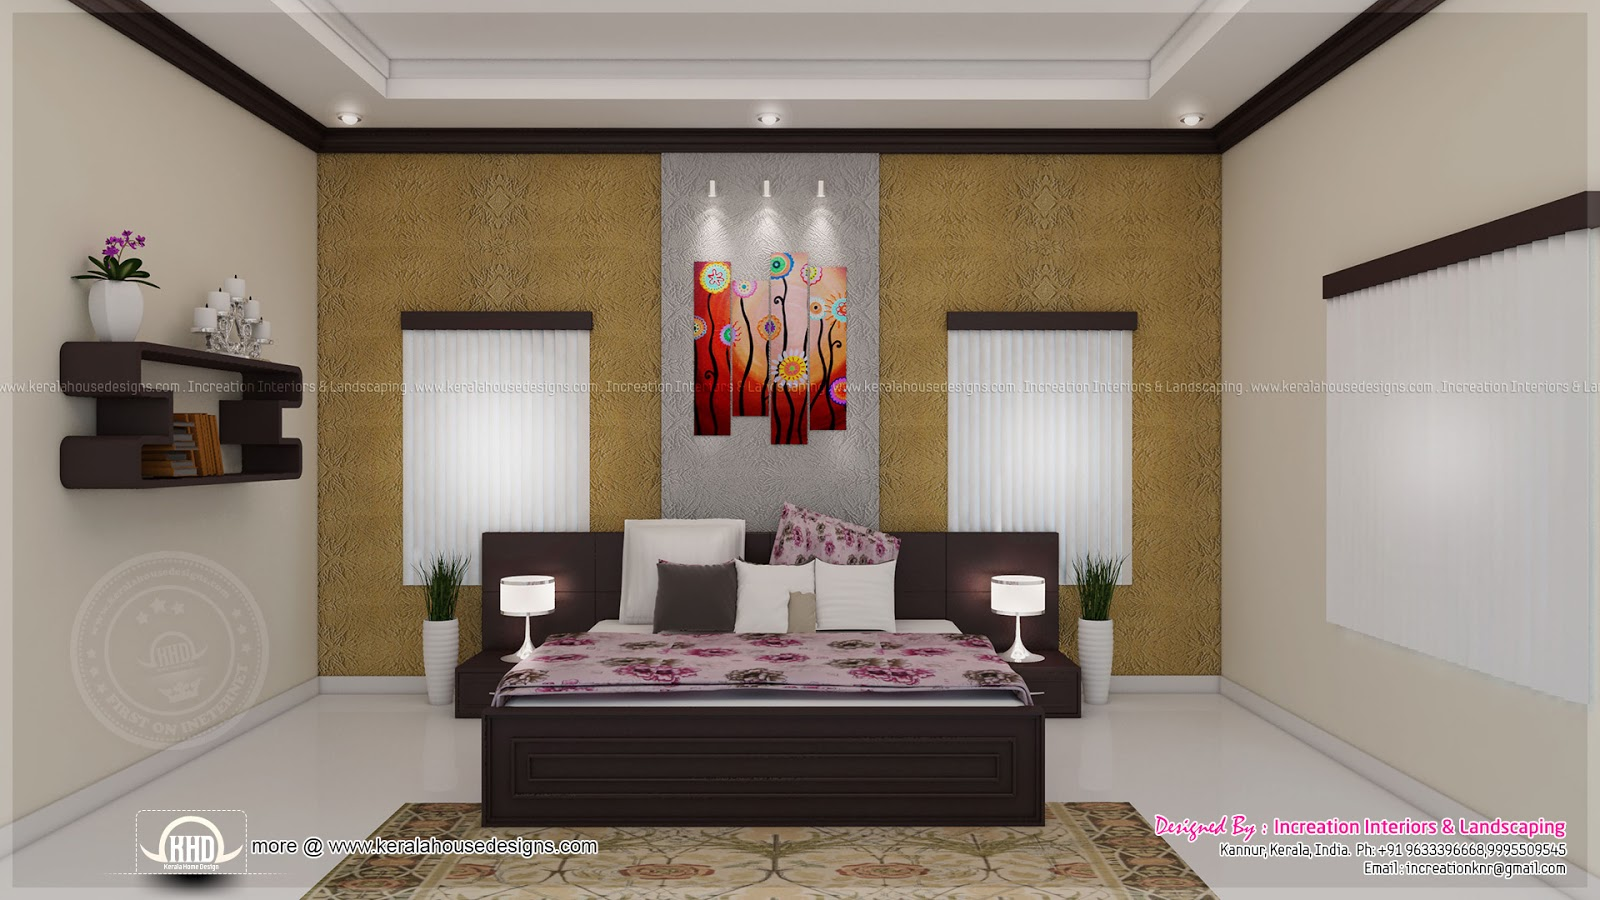 House interior ideas in 3d rendering kerala home design for Interior decoration of house photos